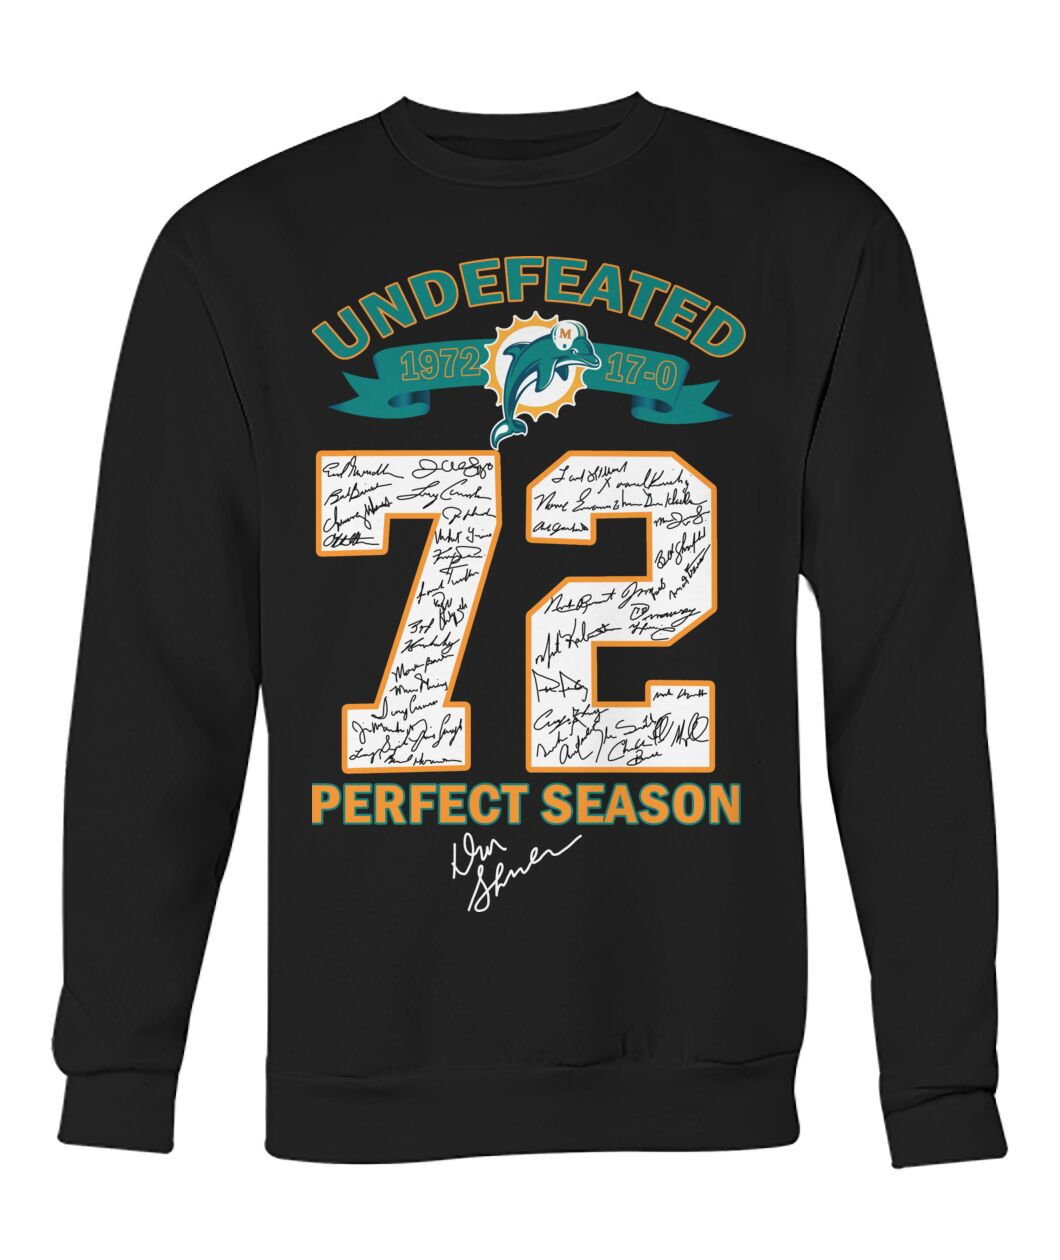 Miami Dolphins Undefeated 72 perfect season shirt 12